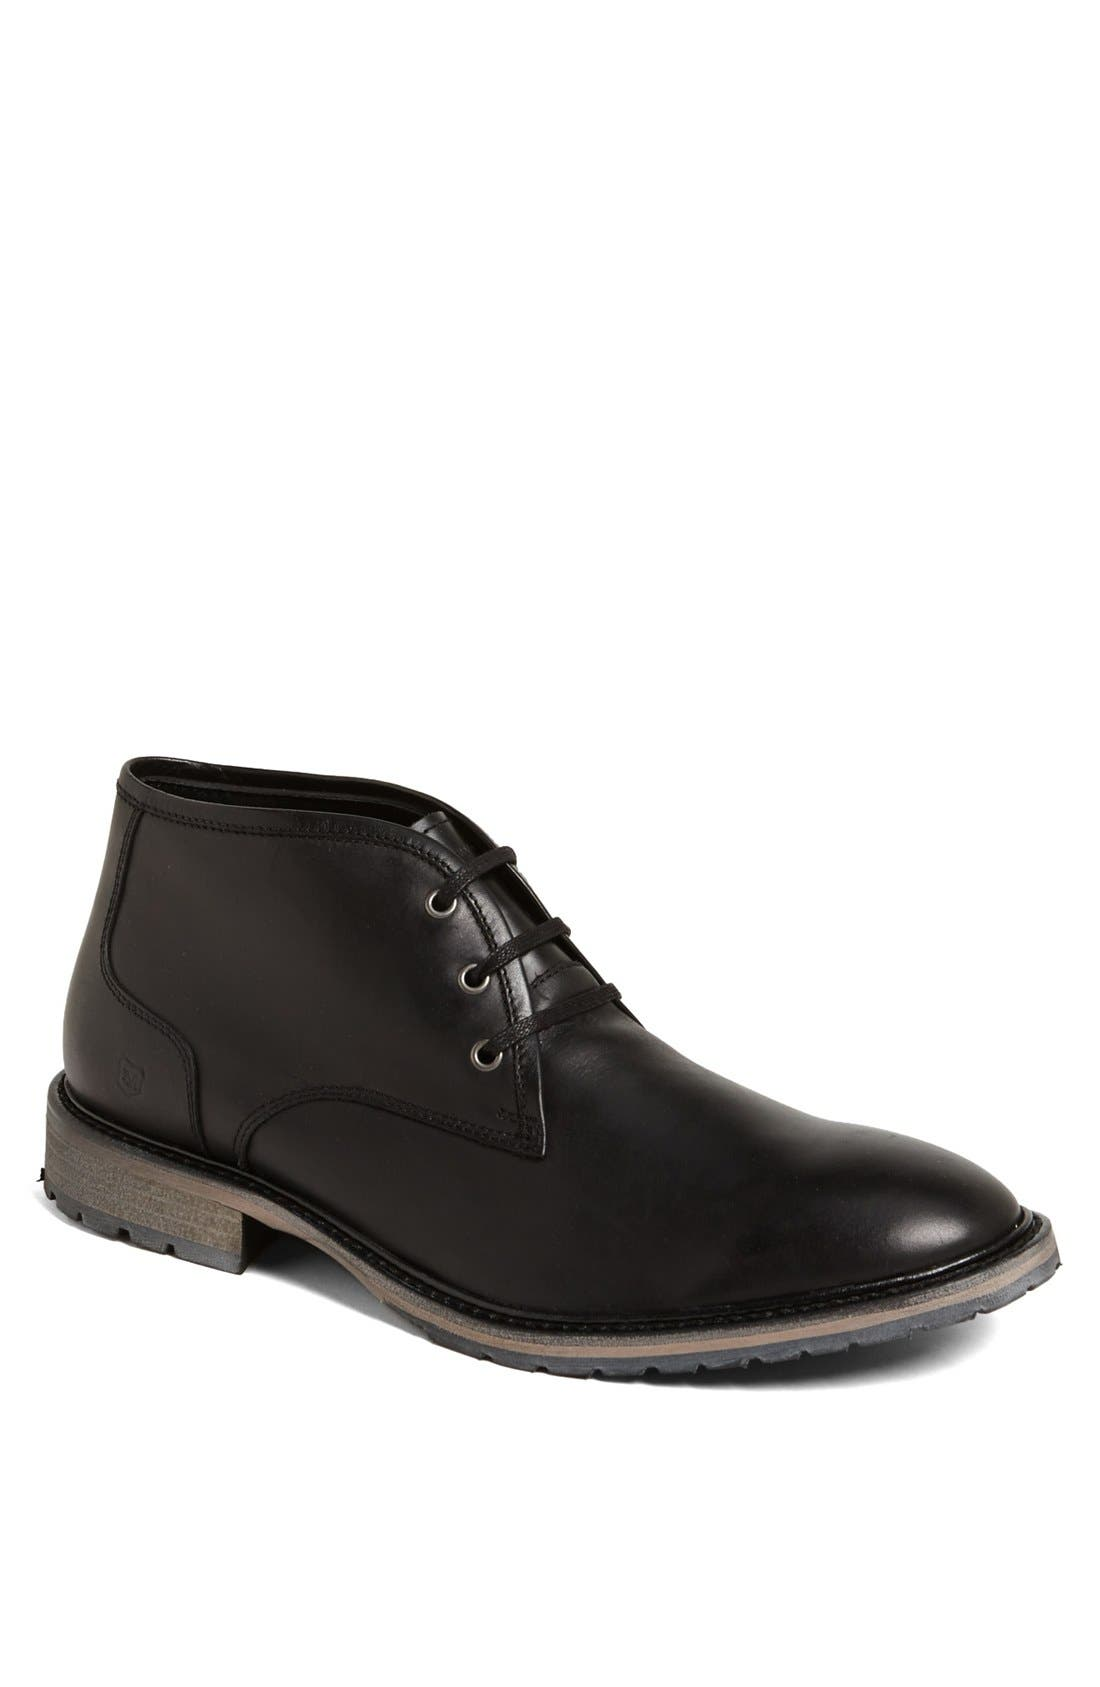 Main Image - Andrew Marc 'Woodside' Chukka Boot (Men)